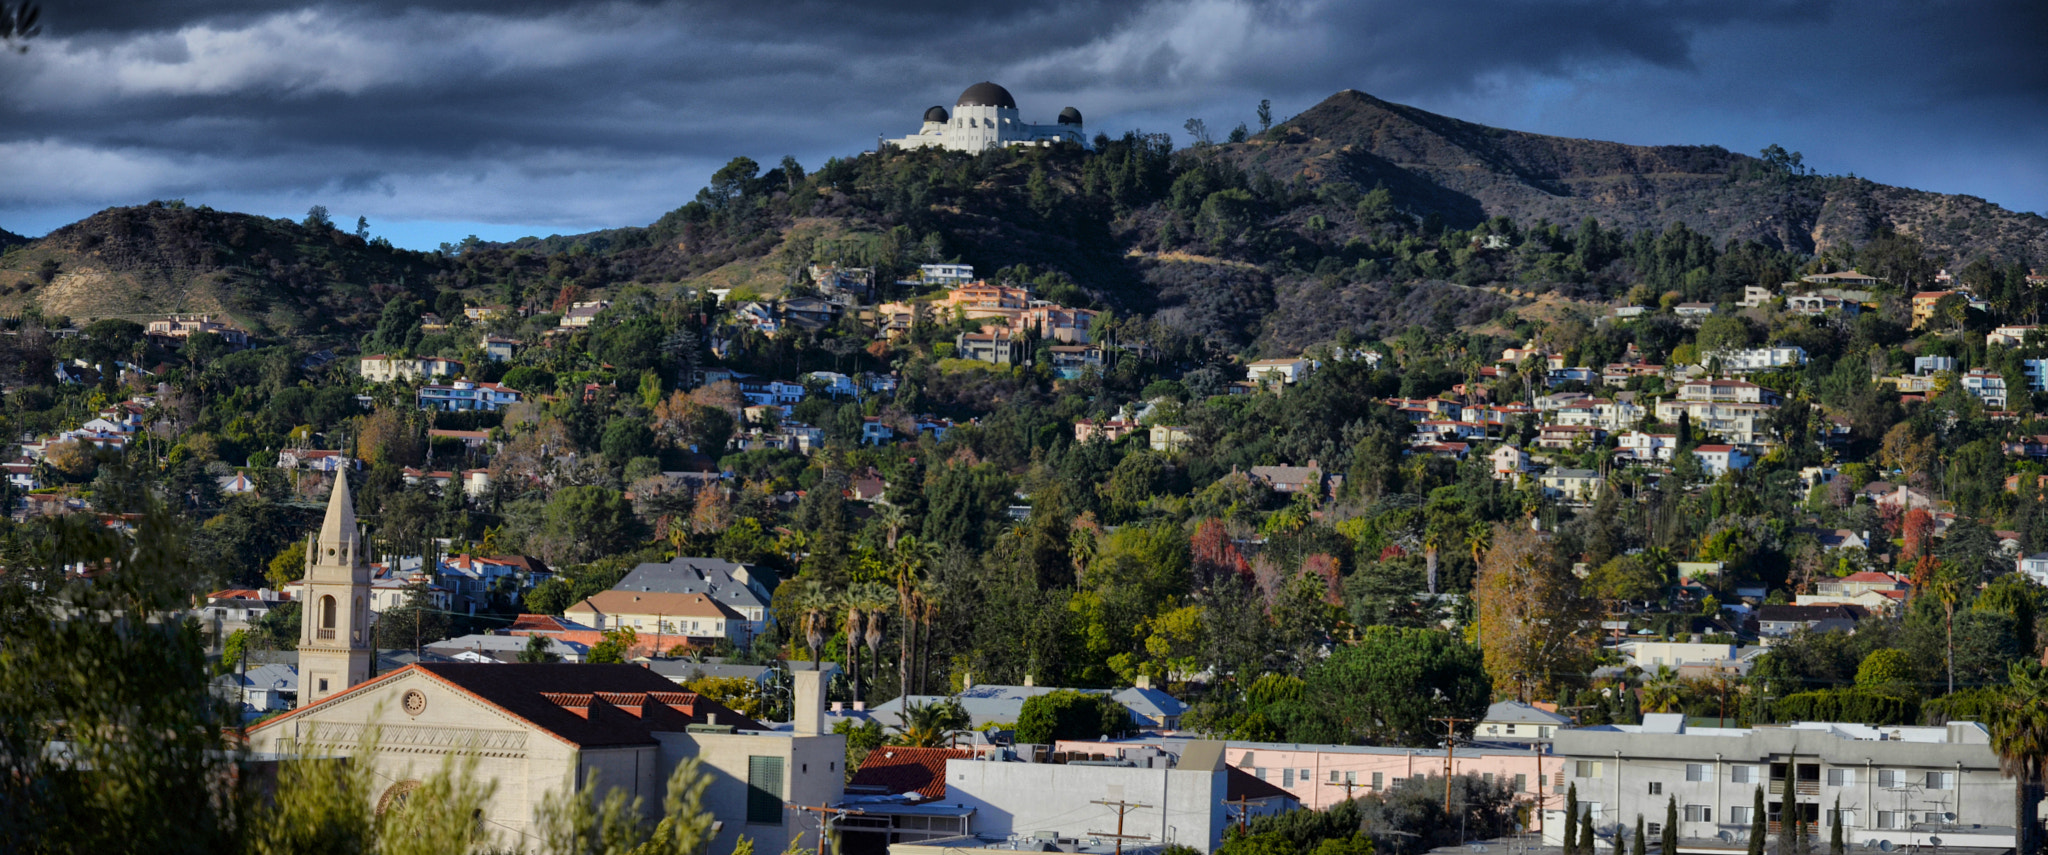 Photograph Hollywood Hills by archie tucker on 500px